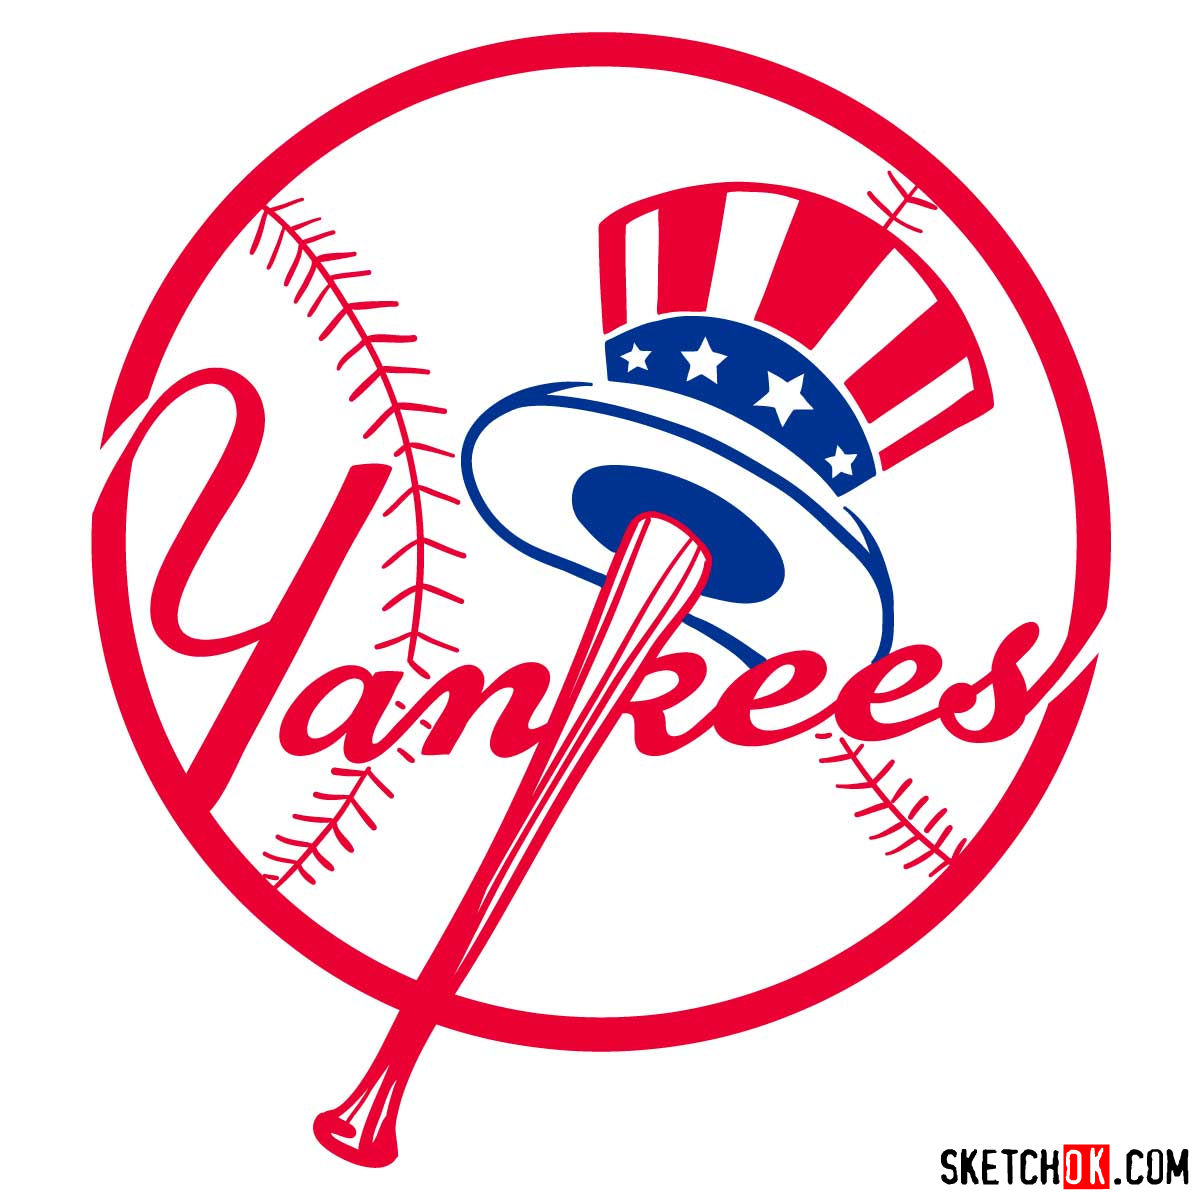 How to draw New York Yankees logo | MLB logos